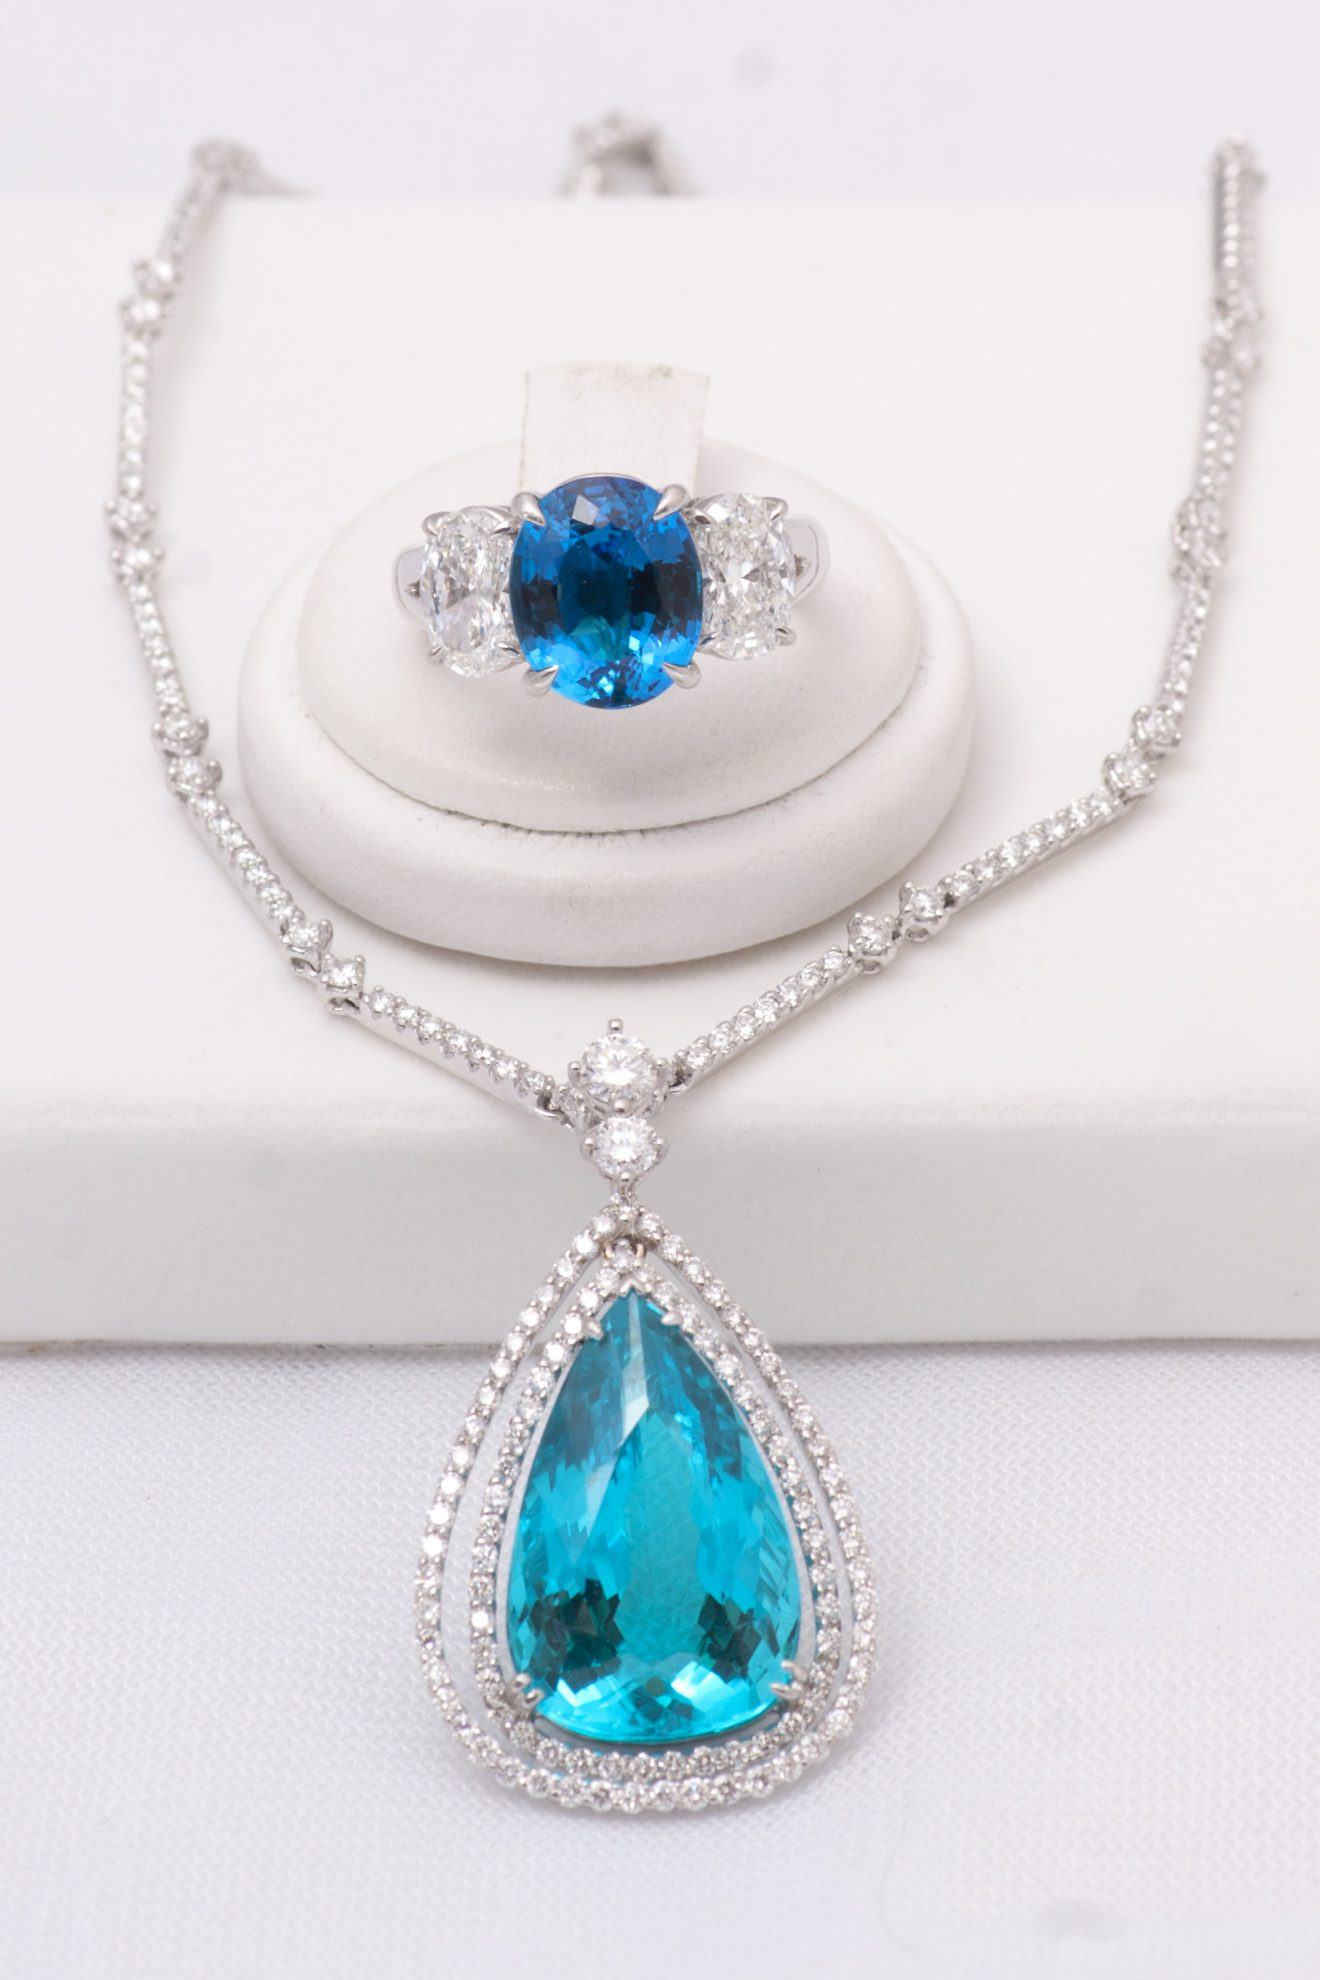 blue gemstones - paraiba ring and necklace